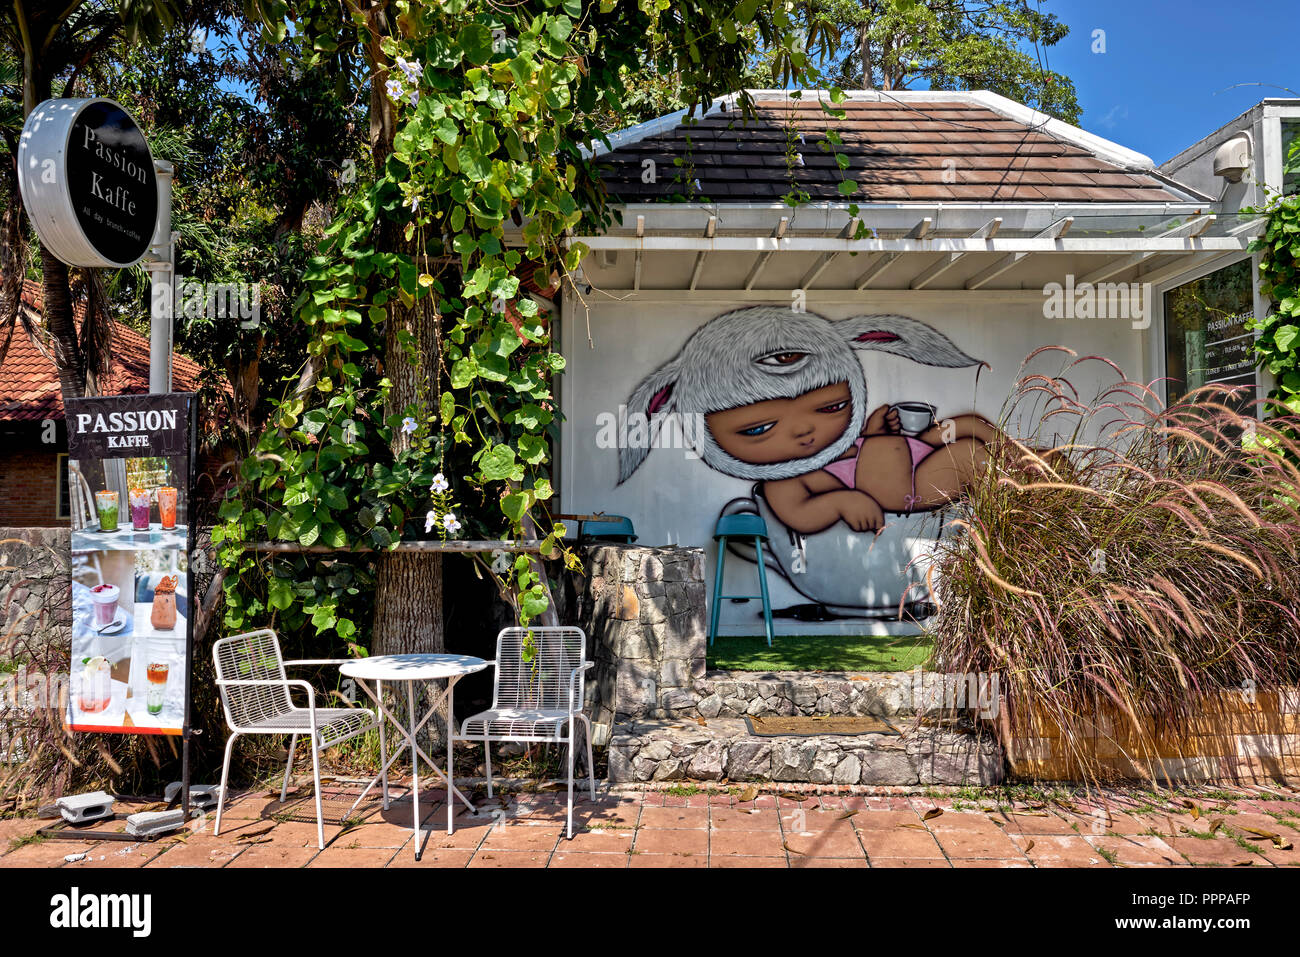 Cafe Wall Art High Resolution Stock Photography And Images Alamy